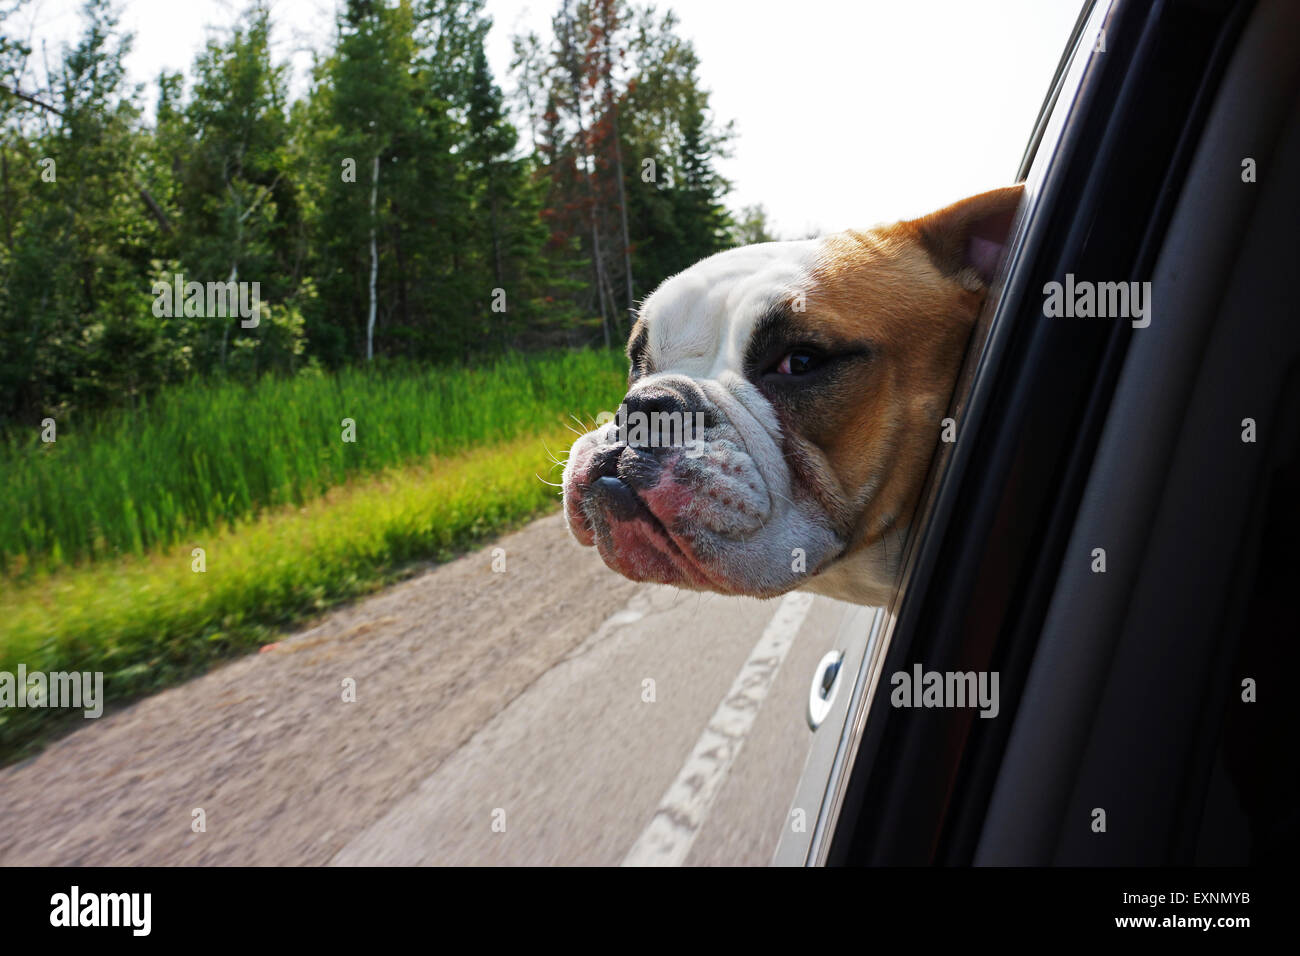 Bulldog sticking his head out of car window - Stock Image